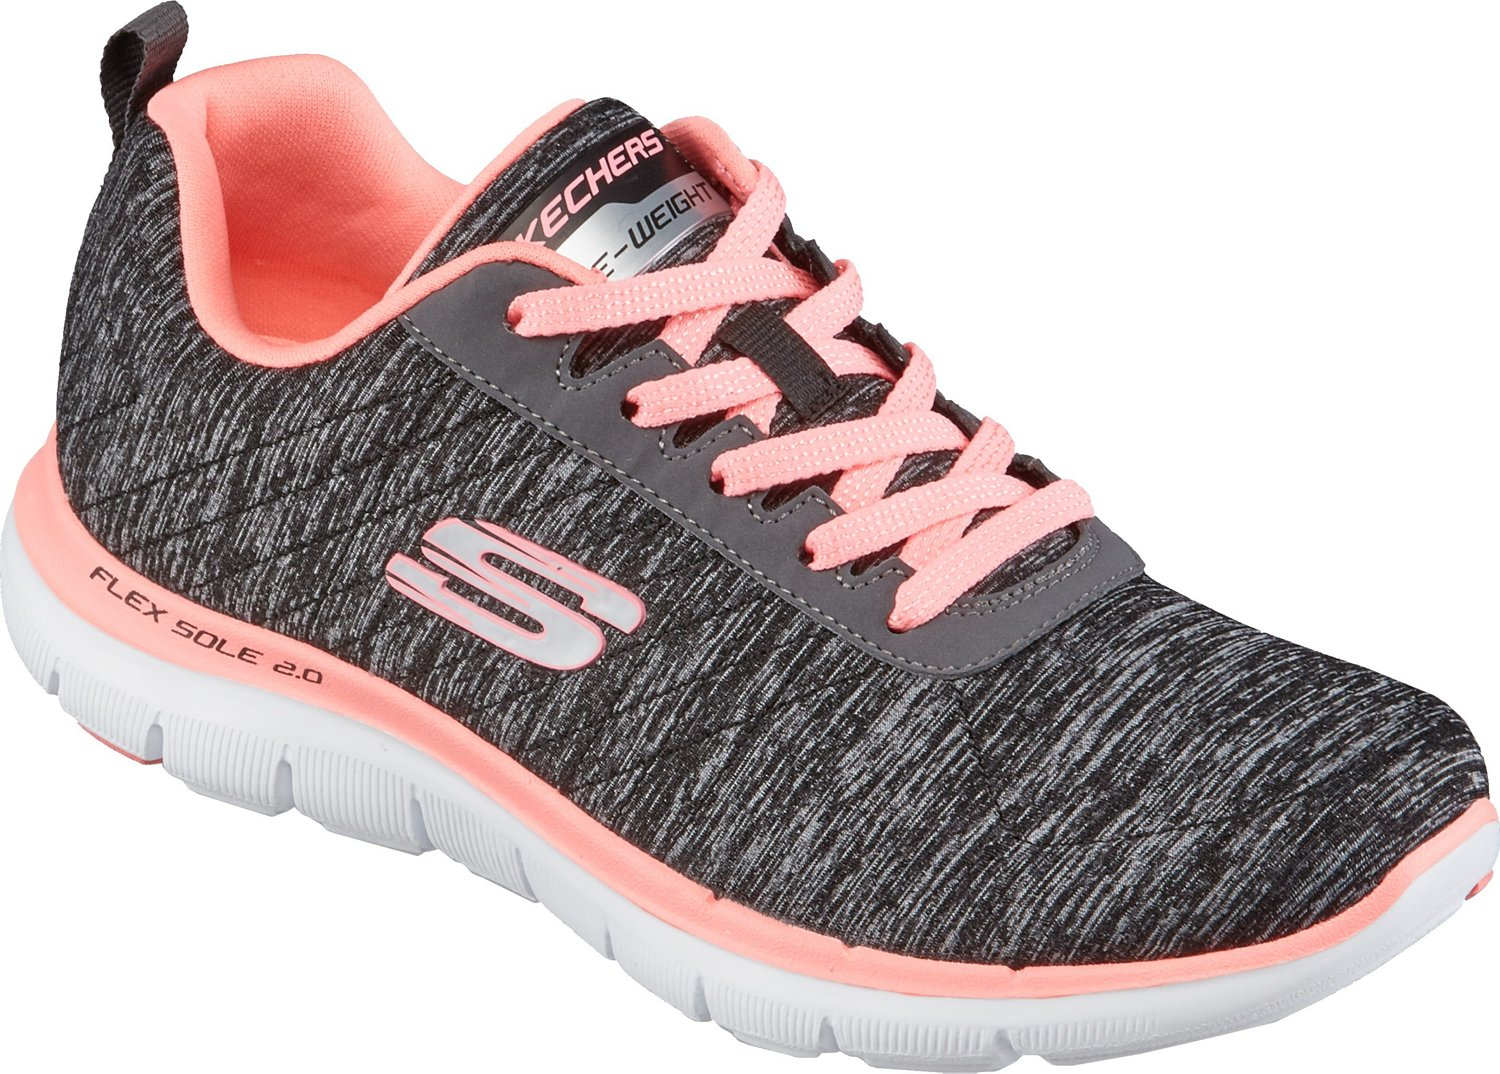 73cd35e9b0aa Display product reviews for SKECHERS Women s Flex Appeal 2.0 Training Shoes